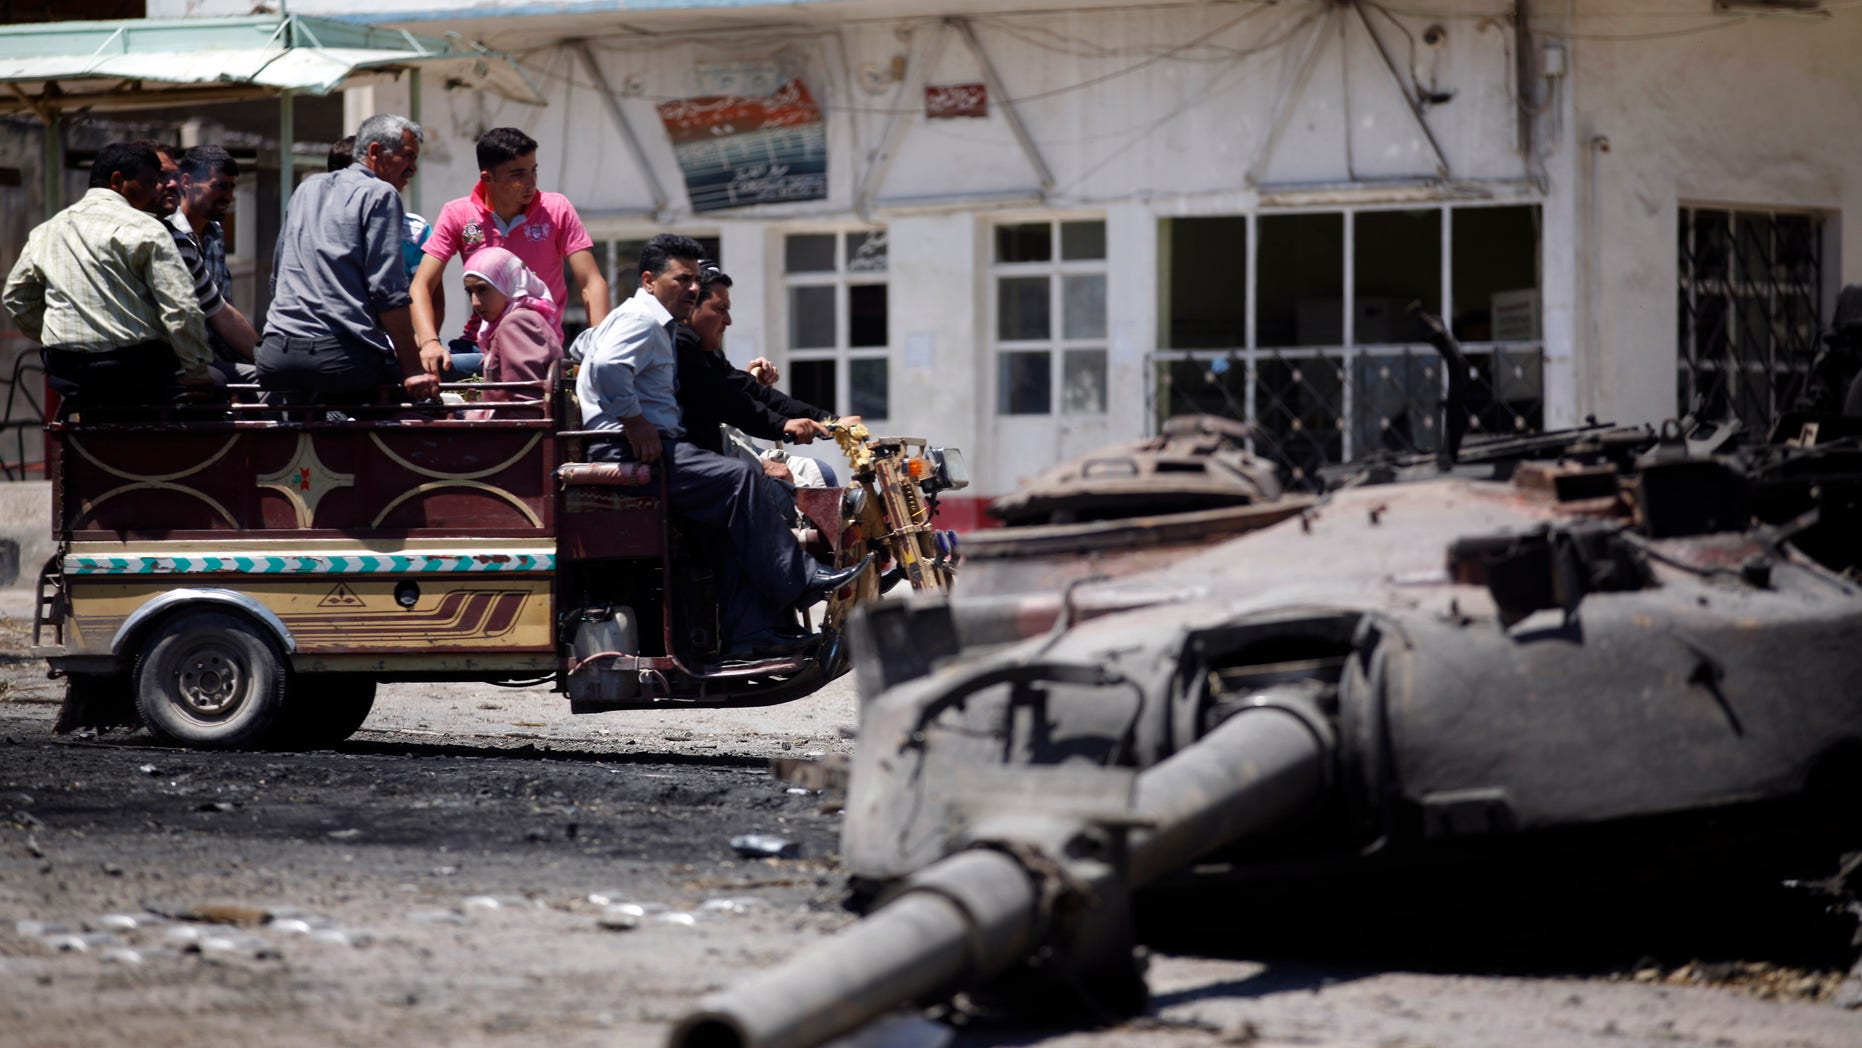 June 10, 2012: Syrians look at a destroyed military tank at the northern town of Ariha, on the outskirts of Idlib, Syria.